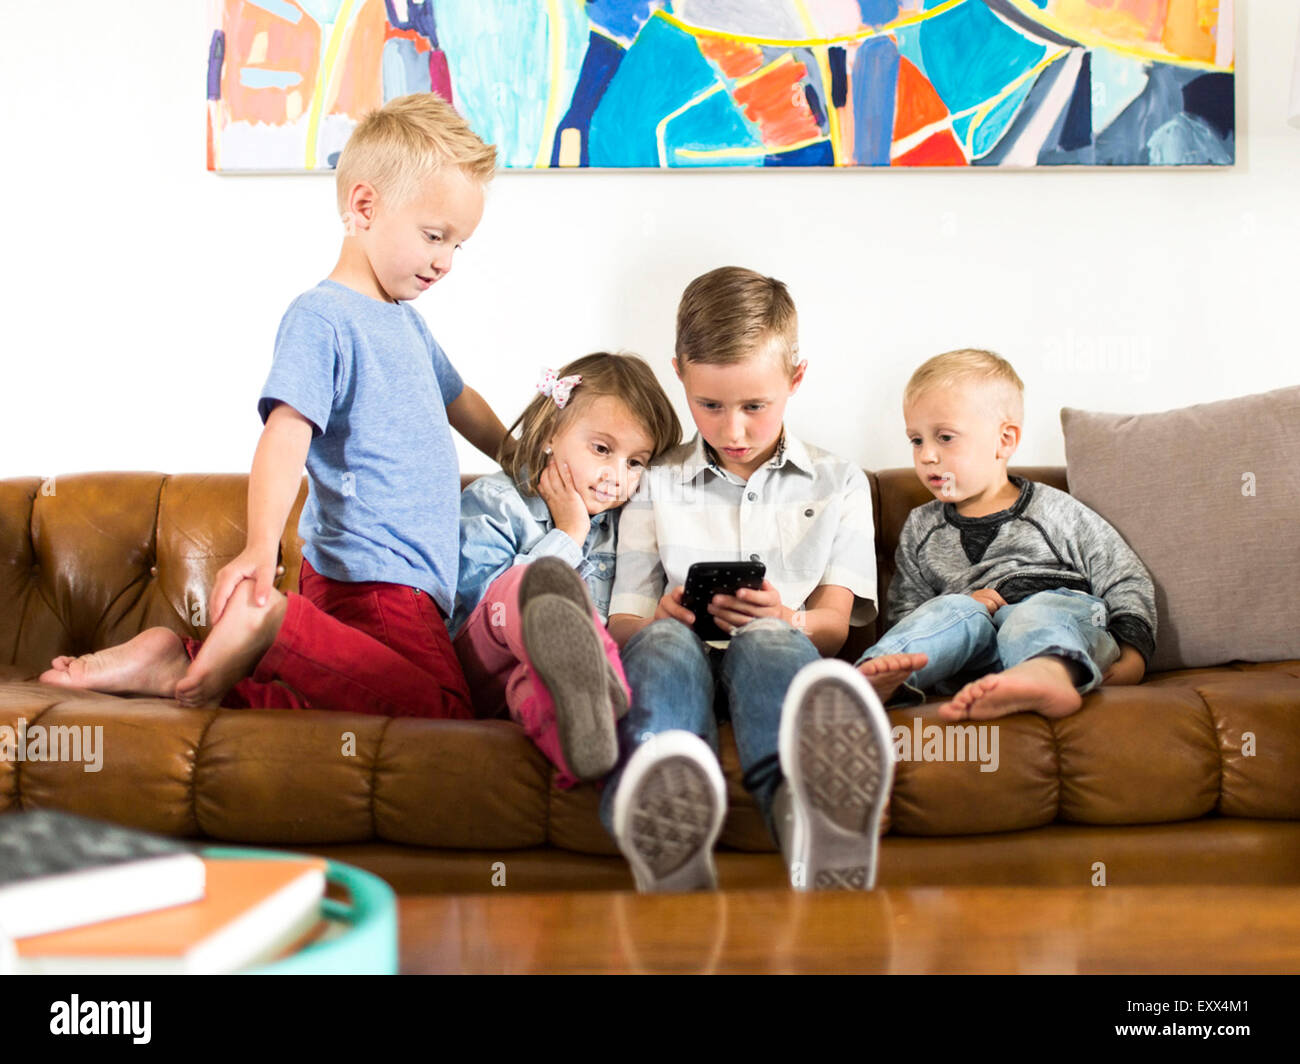 Enfants (2-3, 4-5, 6-7) sitting on sofa et using smartphone Photo Stock